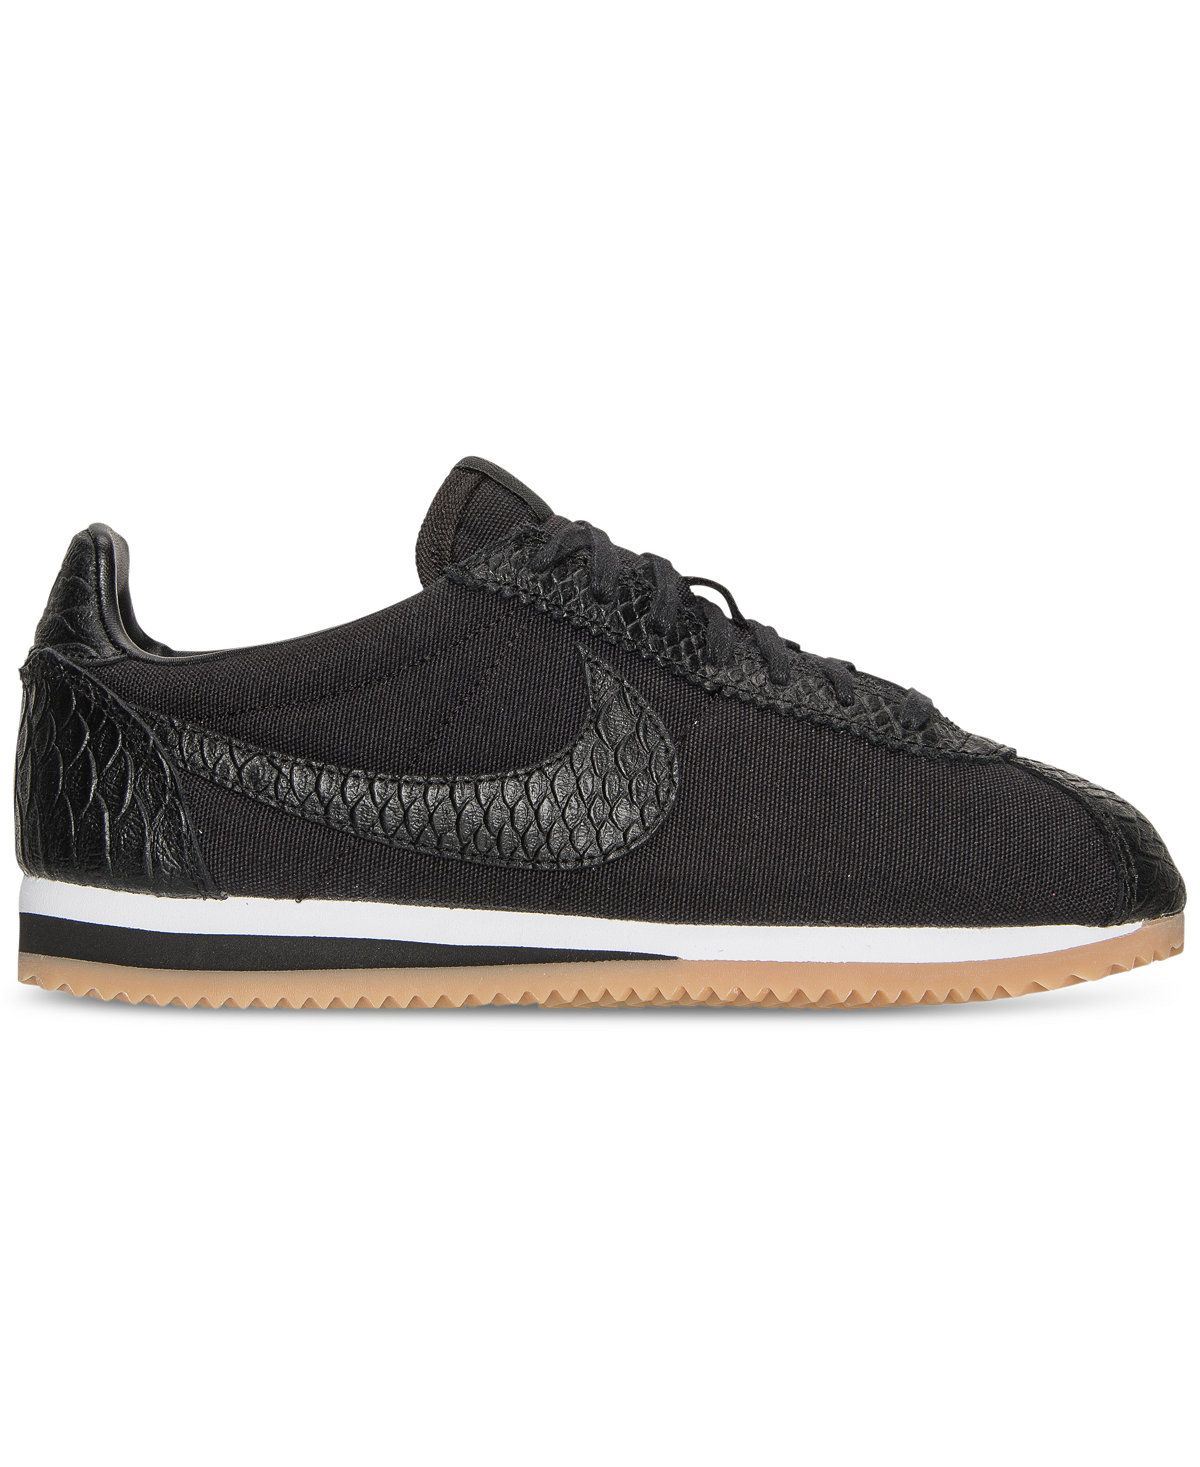 detailed look 96035 48e07 Nike Women s Classic Cortez SE Casual Sneakers from Finish Line - Sneakers  - Shoes - Macy s